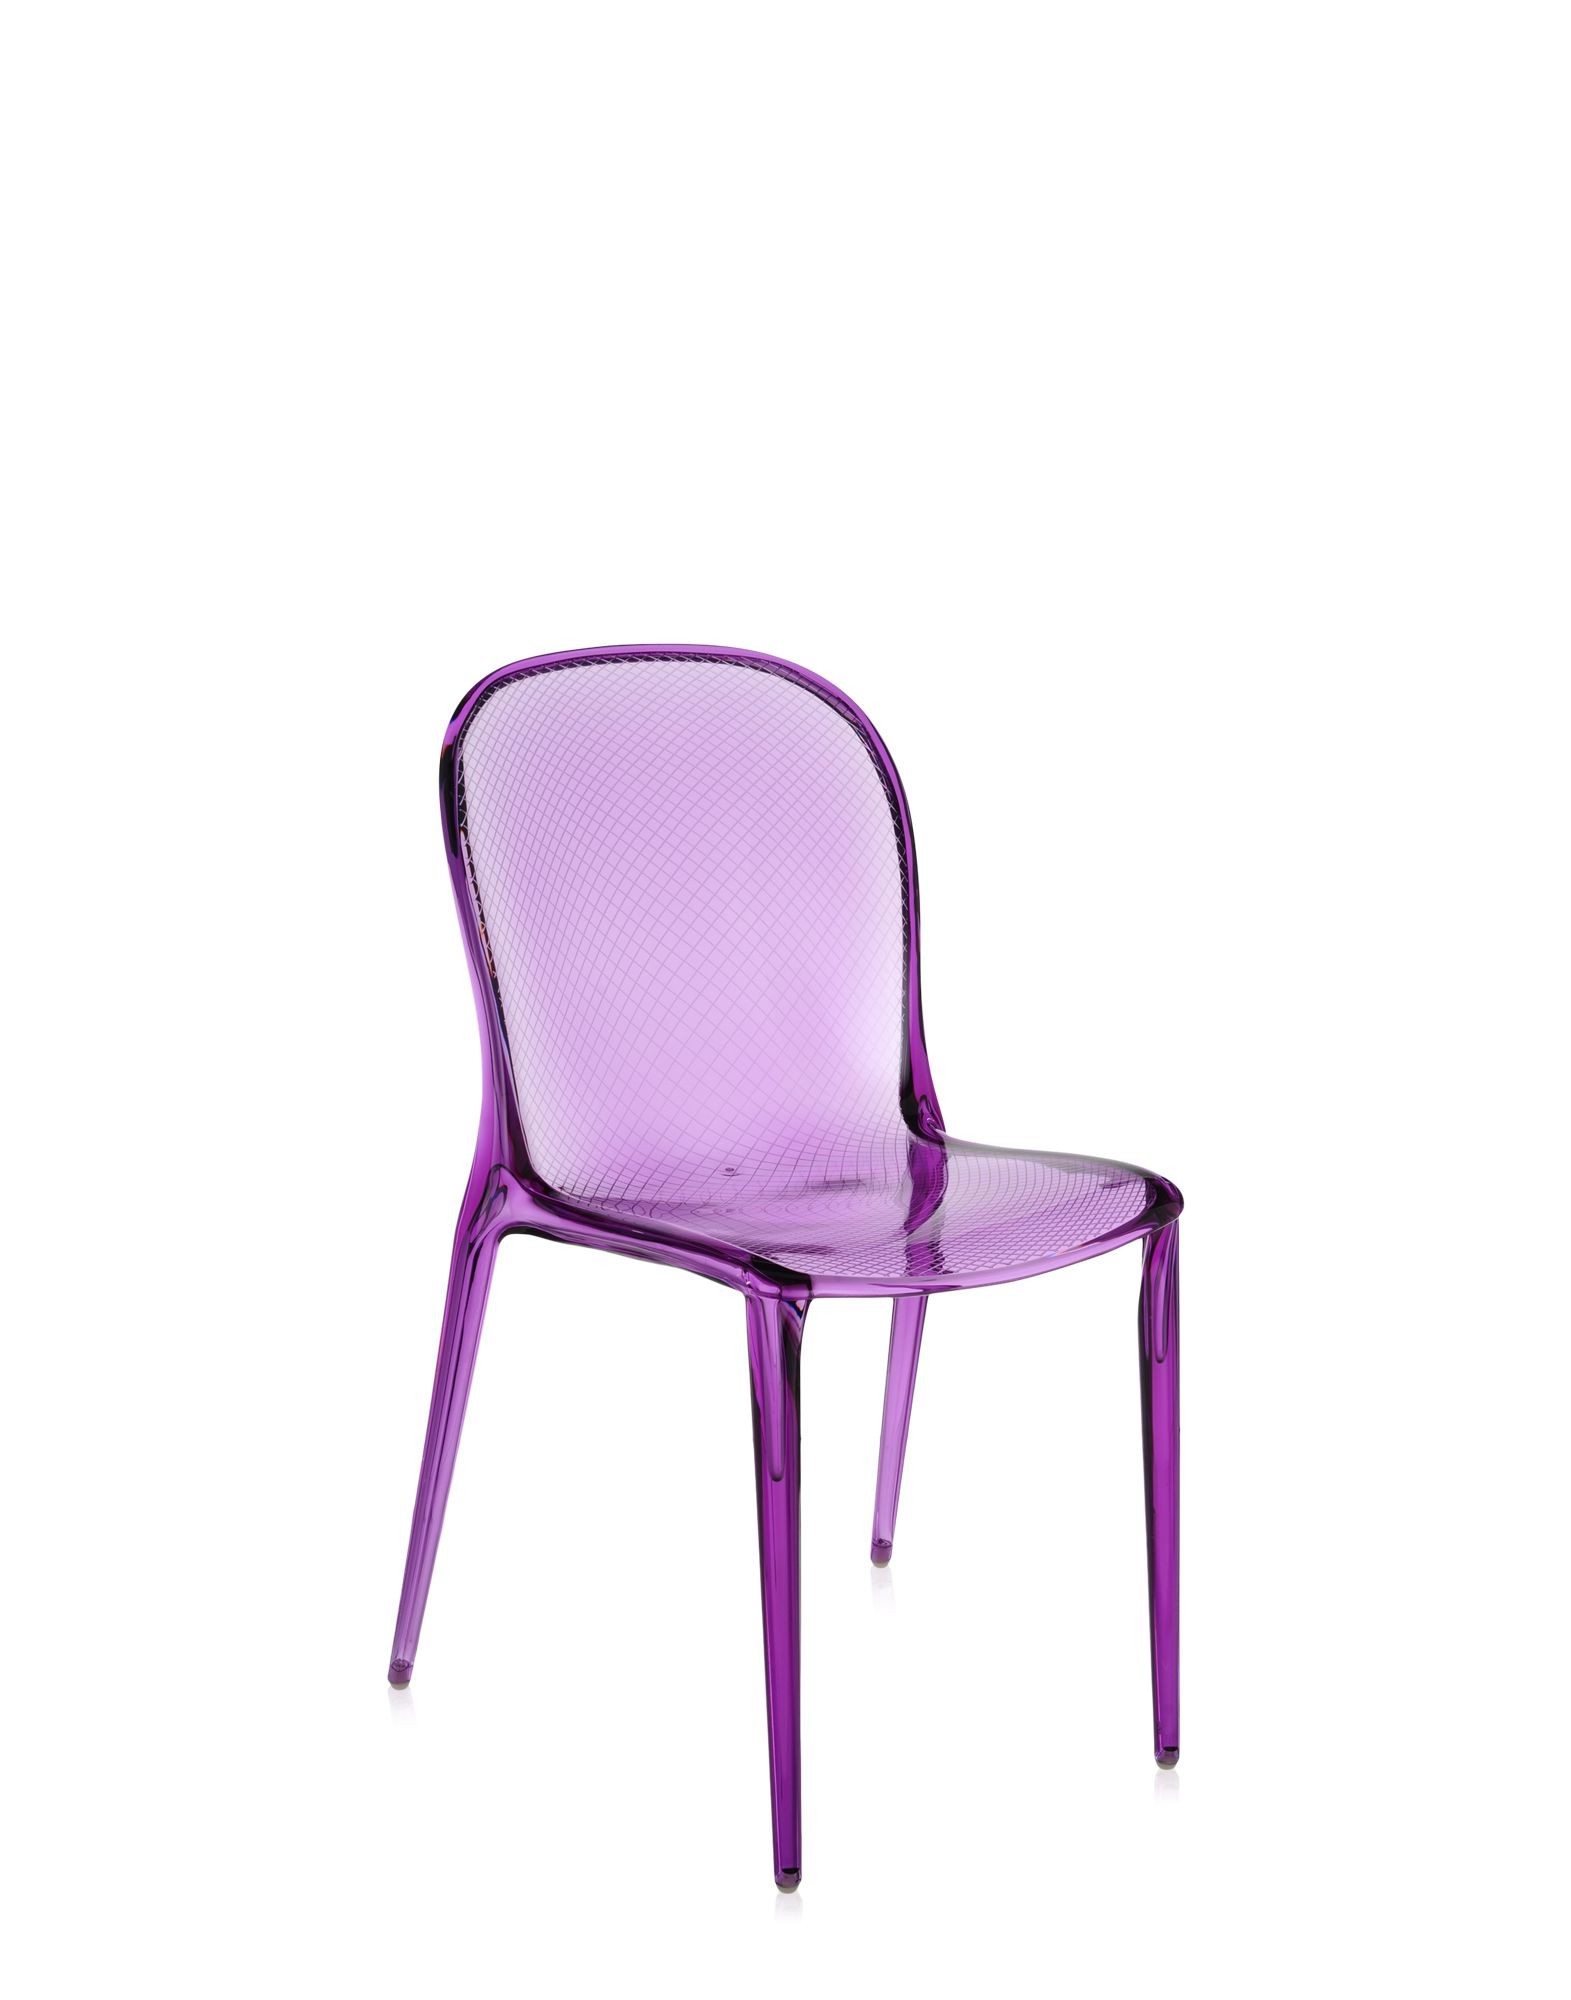 Chaise THALYA de Kartell, 4 coloris